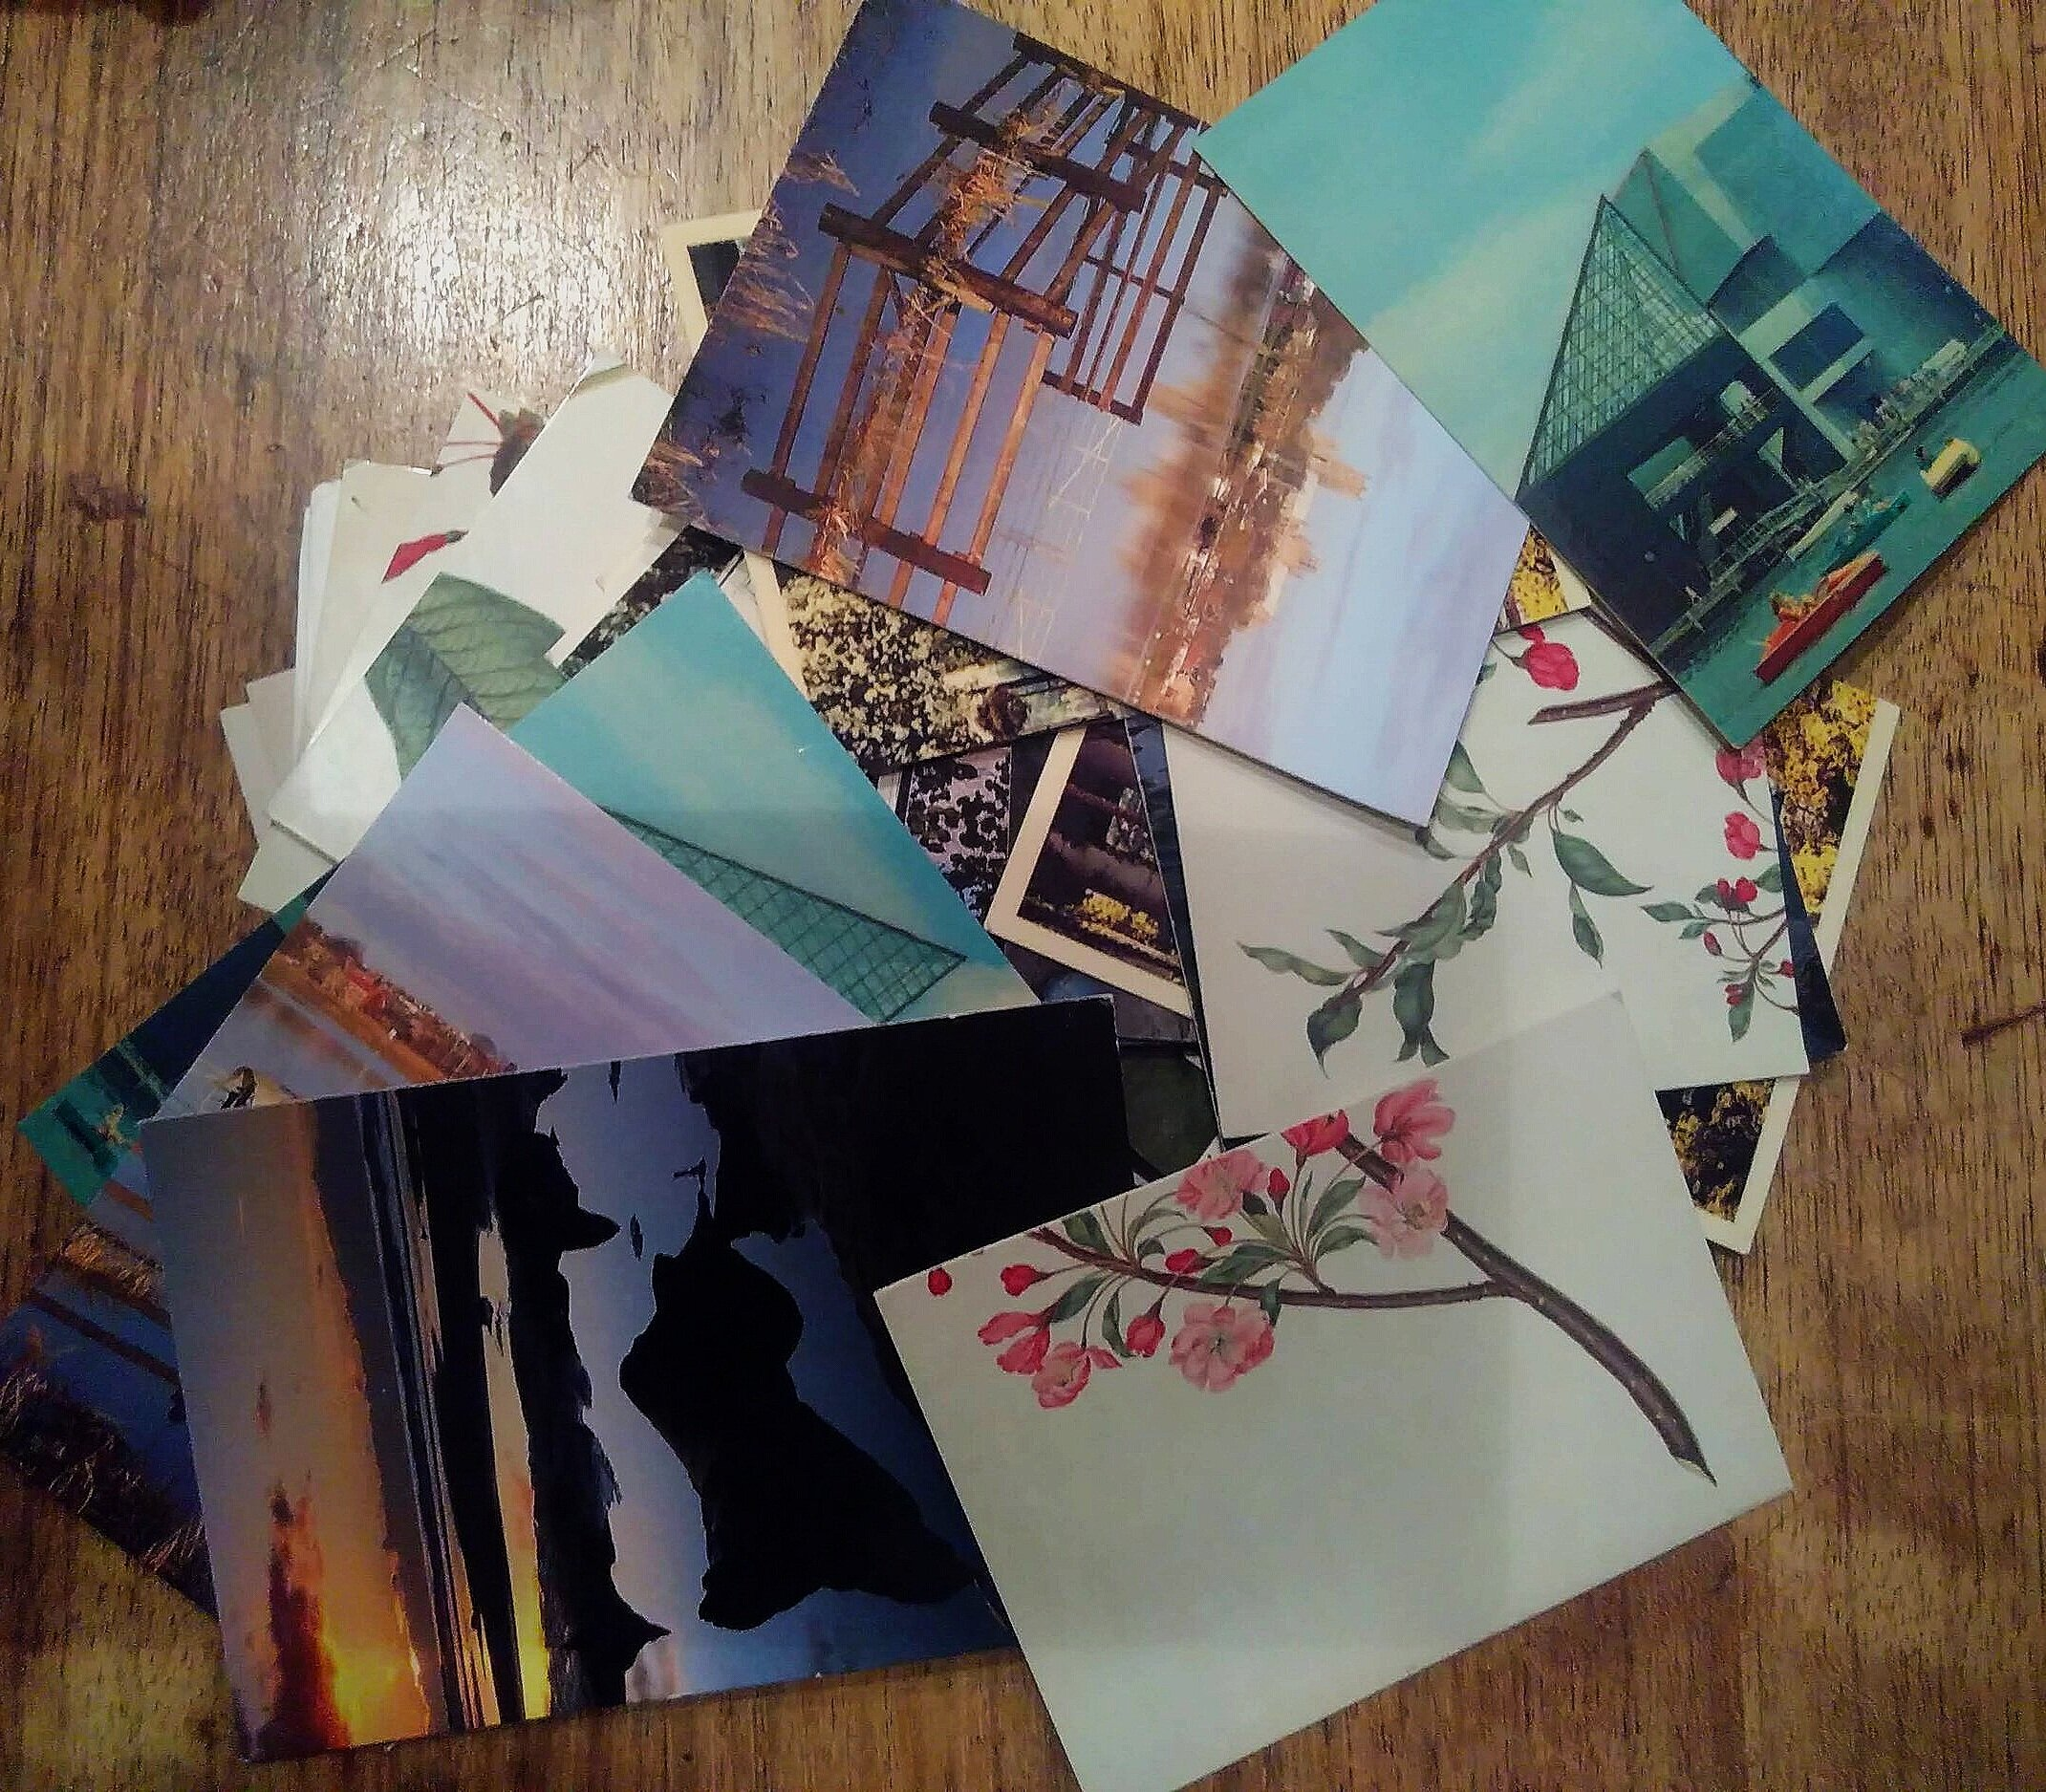 A pile of postcards, cut in half and mixed up